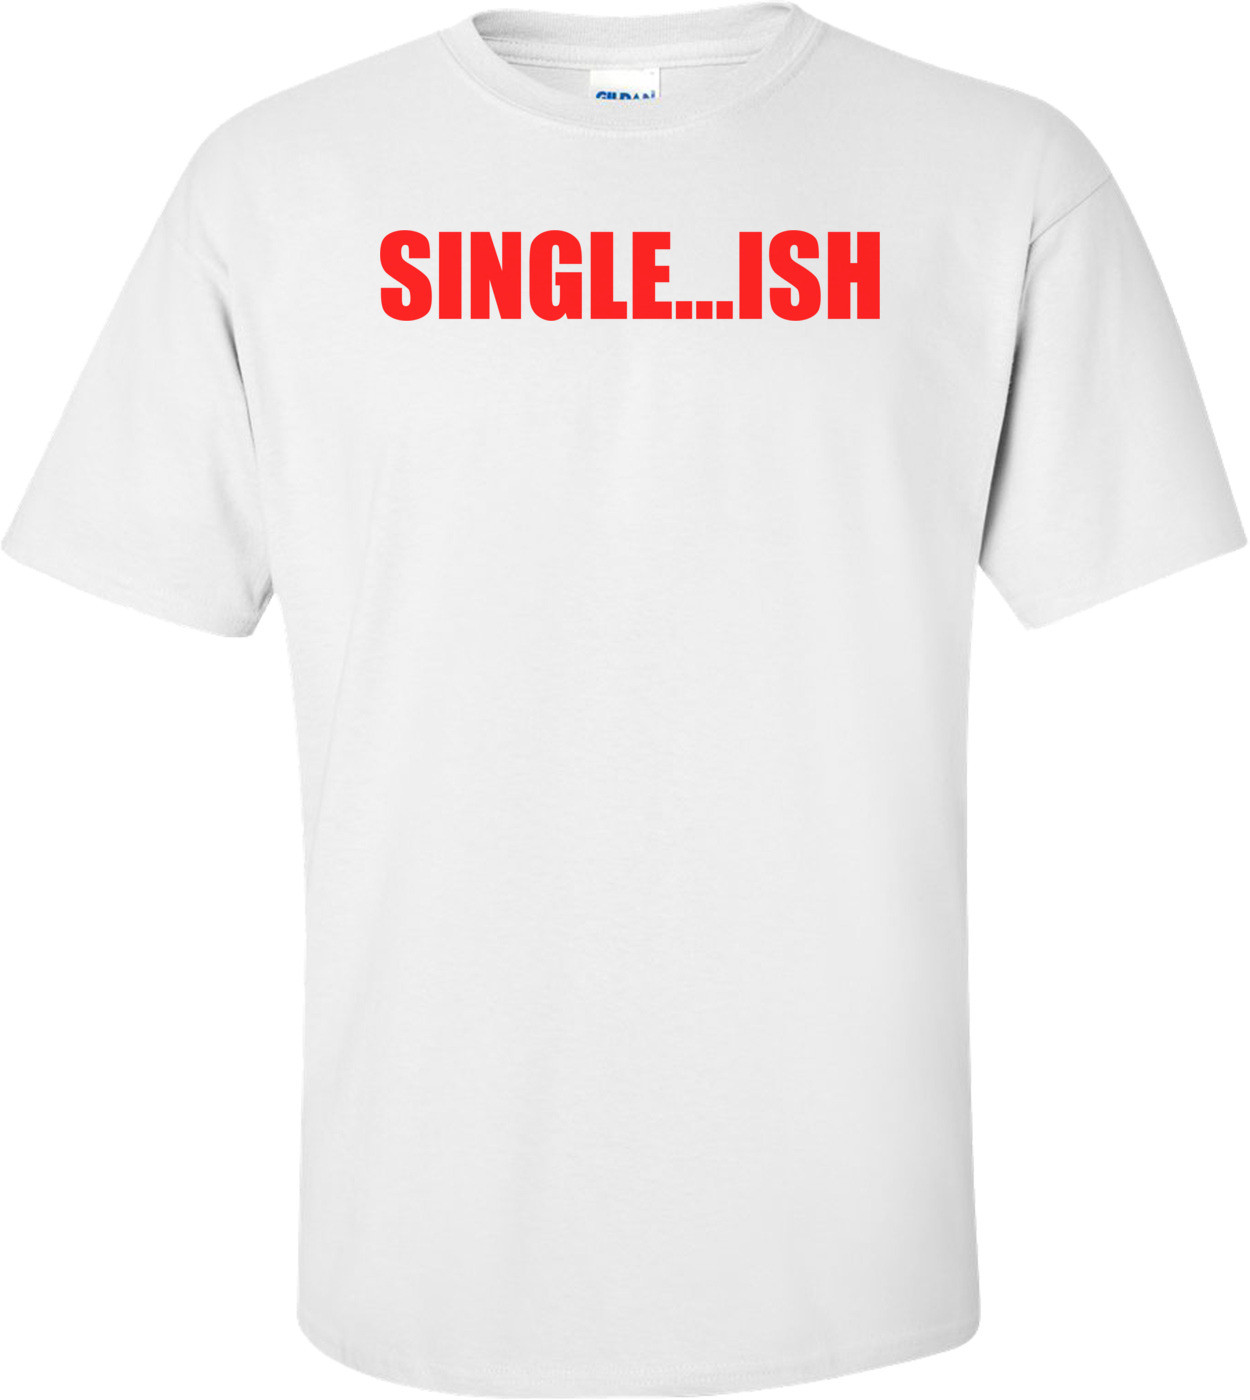 SINGLE...ISH Shirt